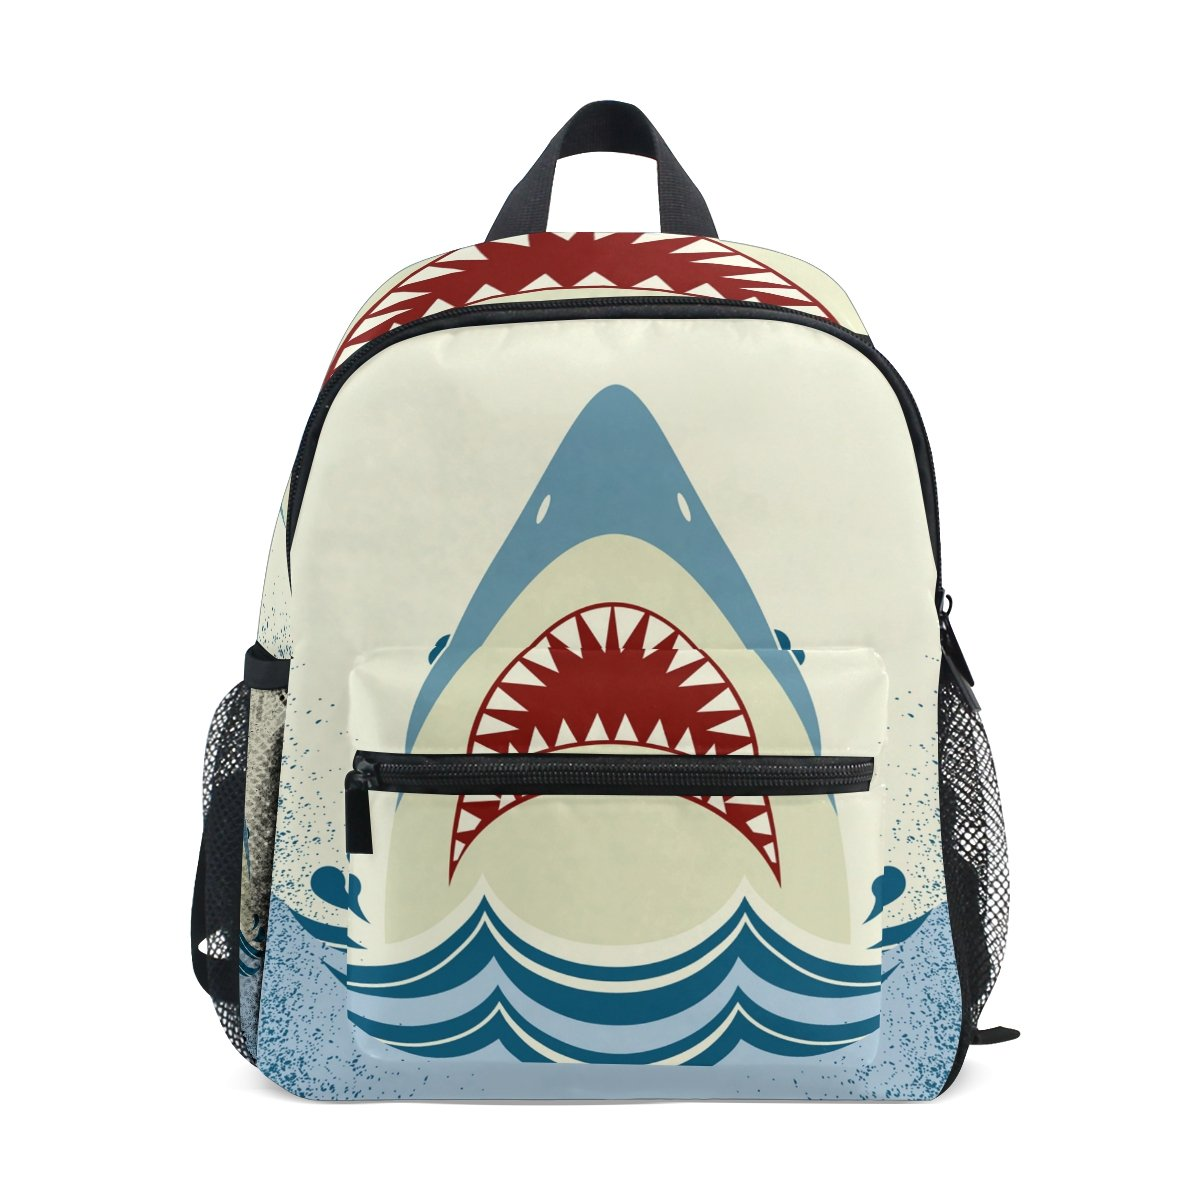 GIOVANIOR Shark Jaws Travel School Backpack for Boys Girls Kids